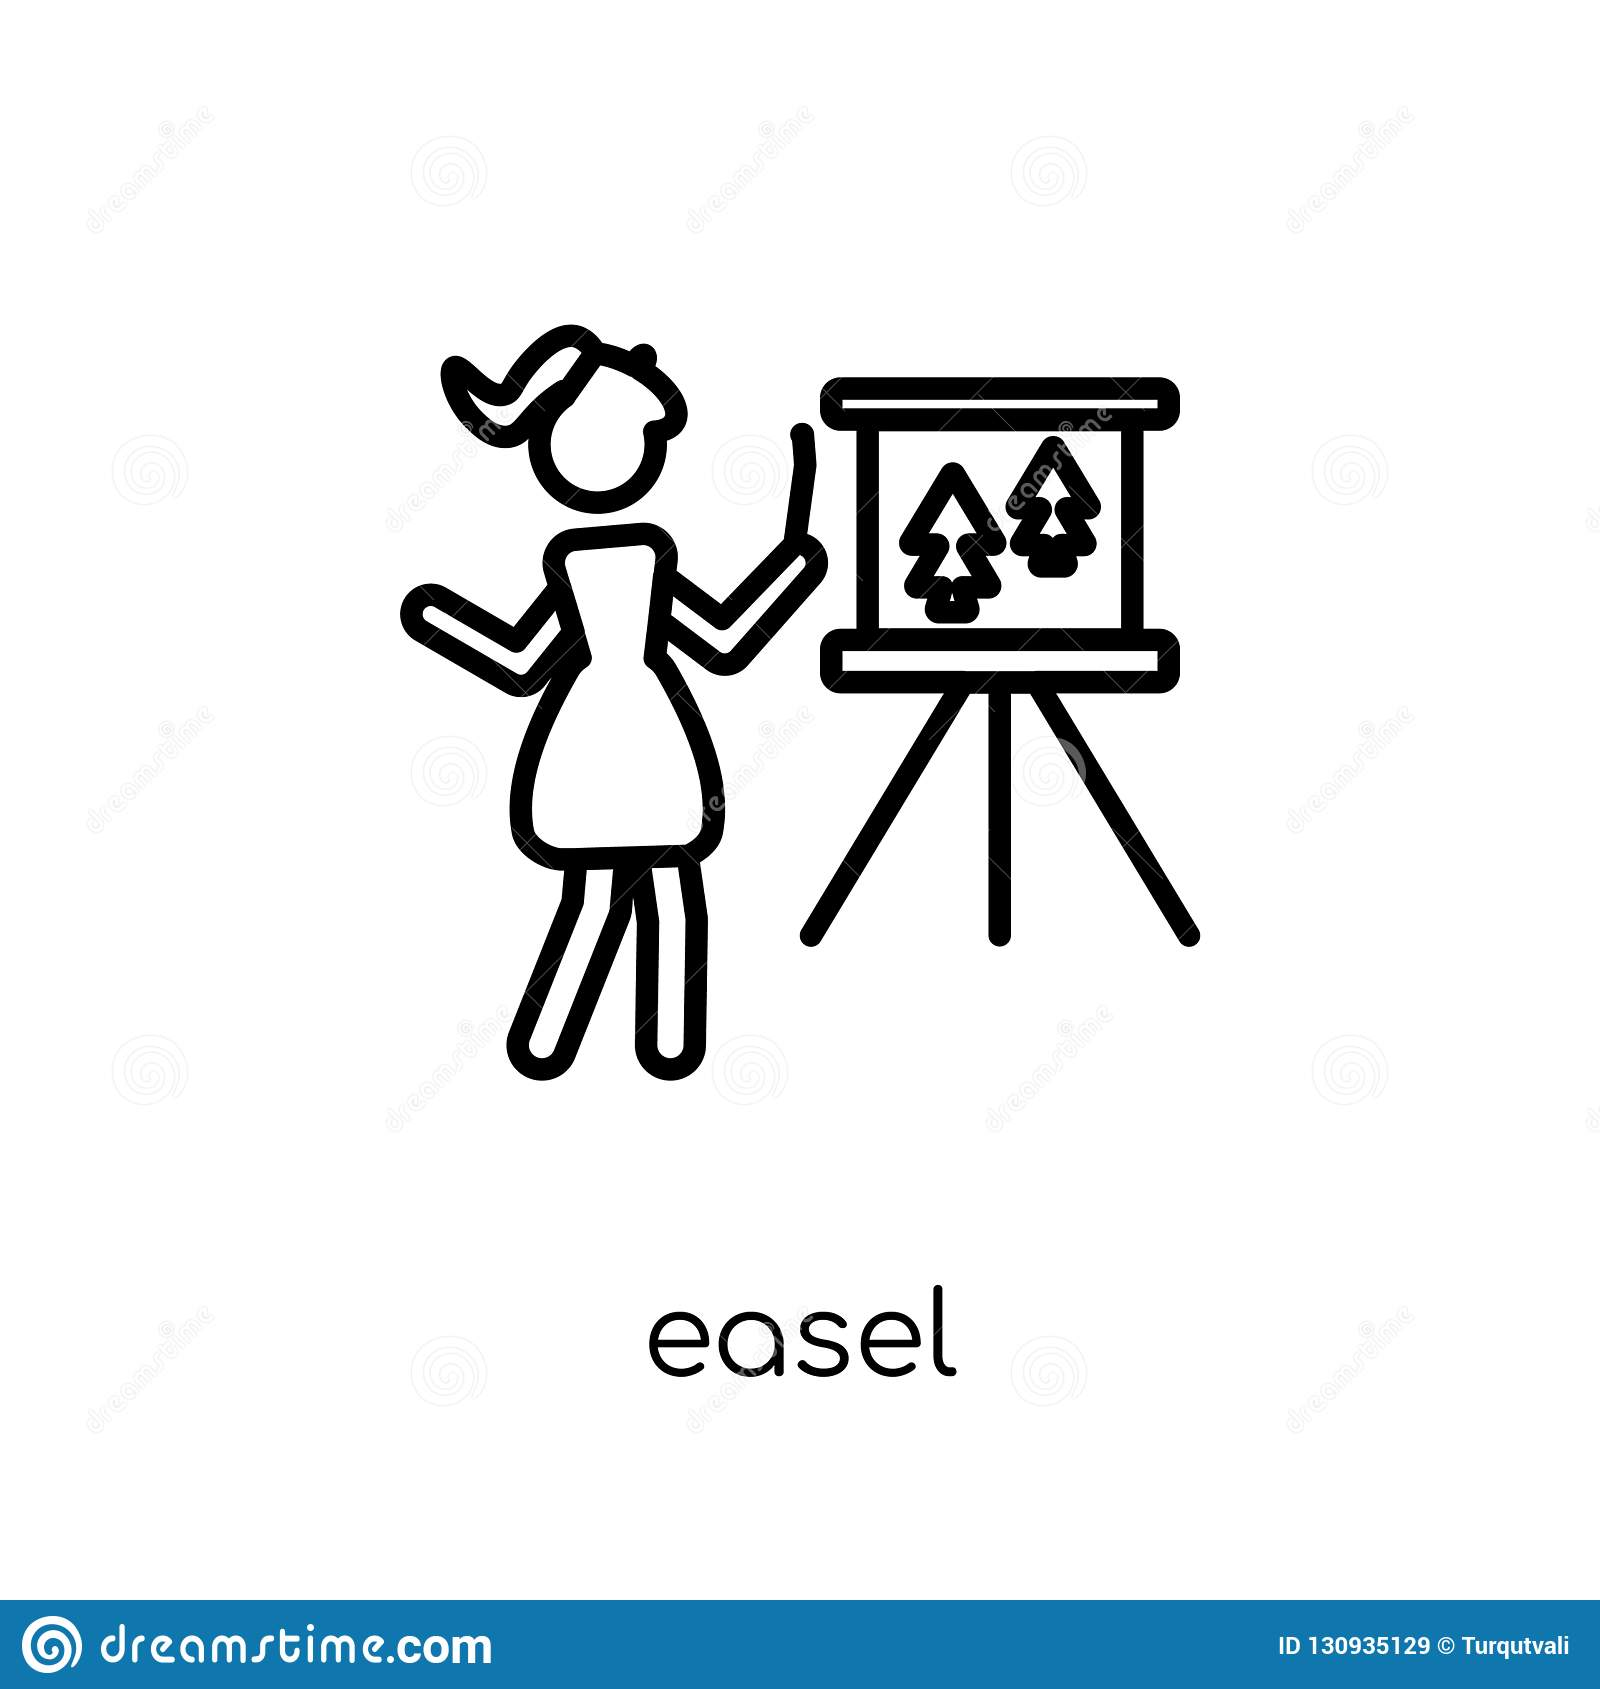 Easel icon. Trendy modern flat linear vector Easel icon on white